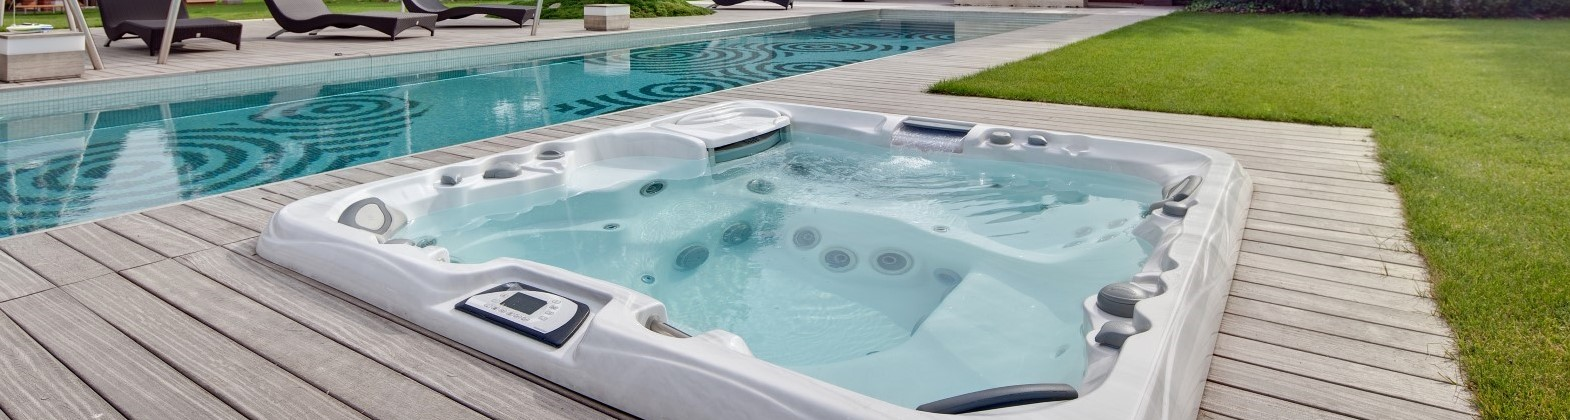 Private and commercial whirlpools from Aquamarine Spa